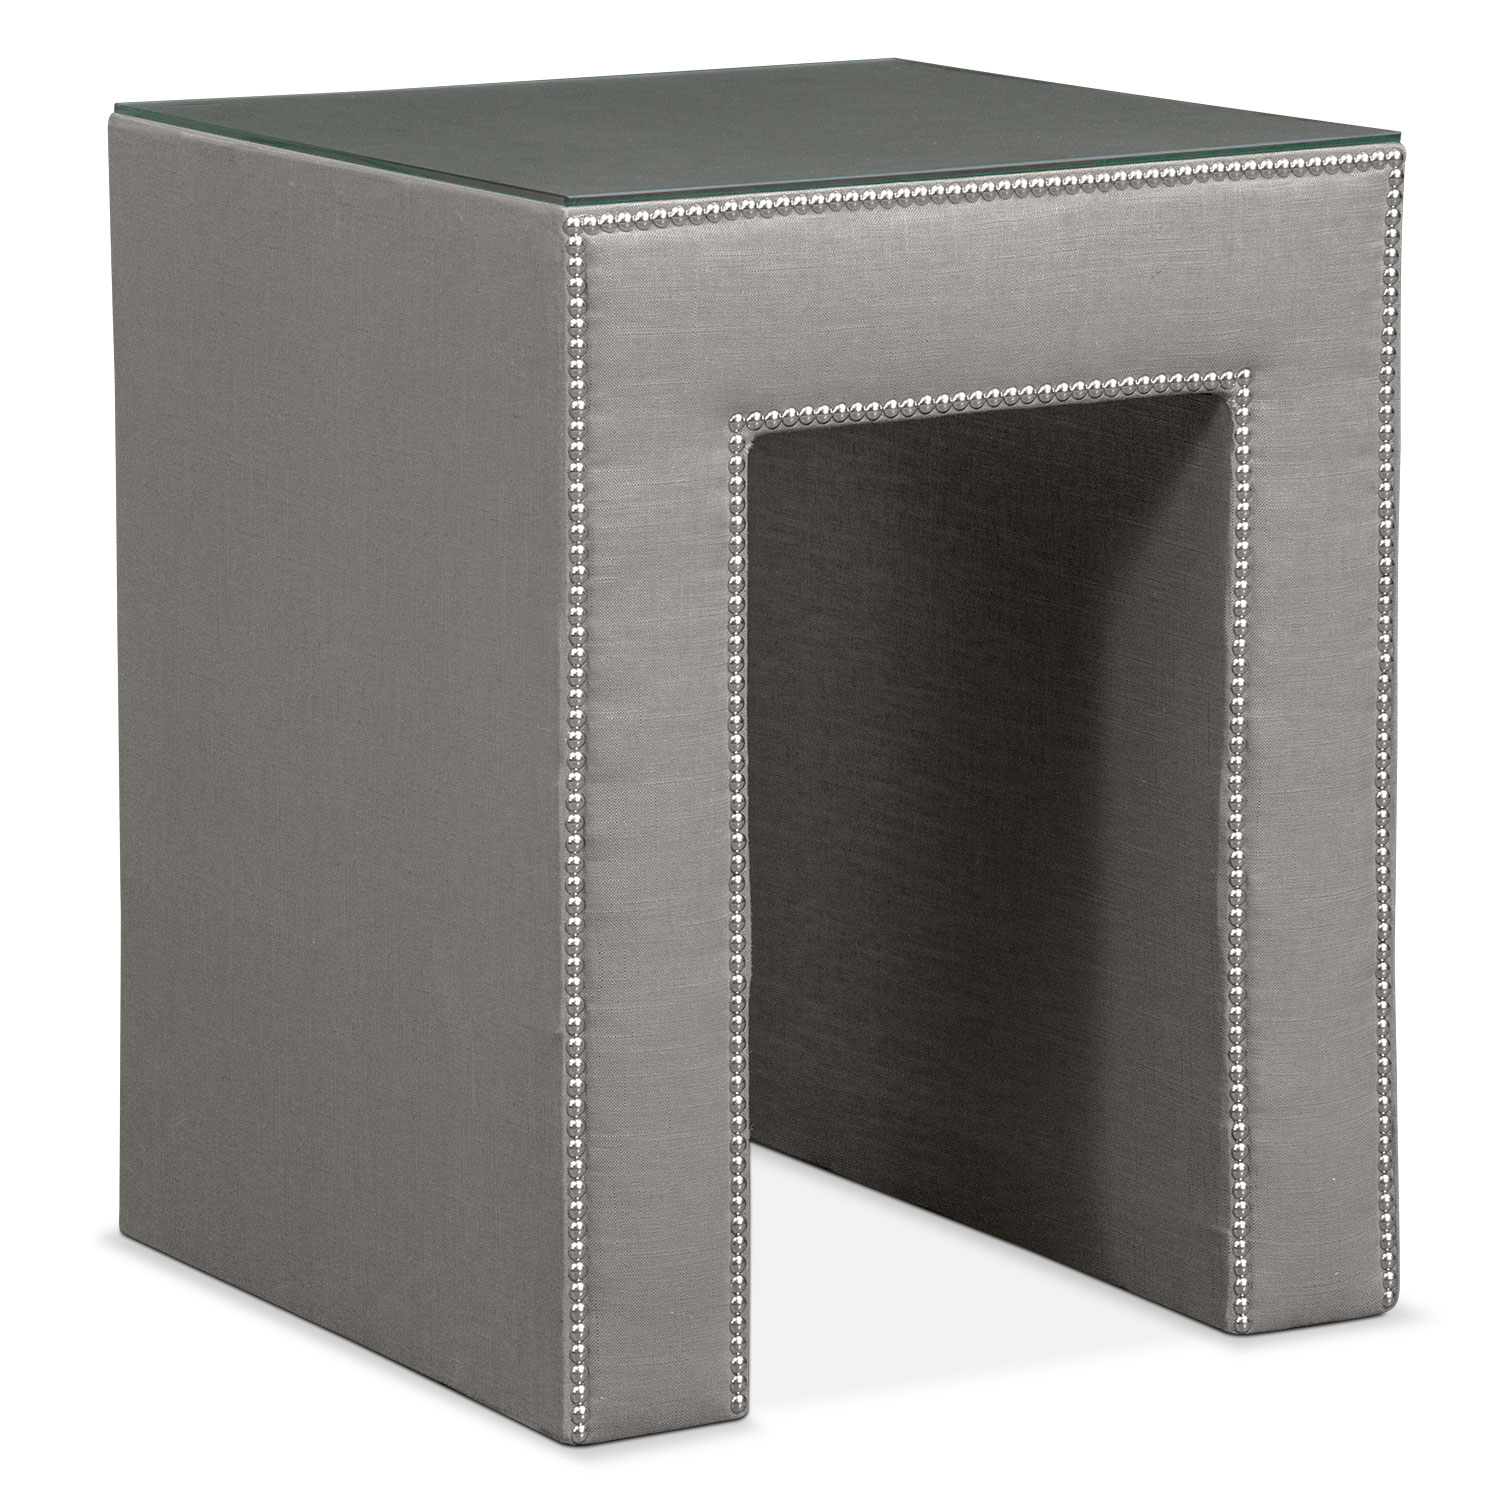 Nyla Nightstand - Granite